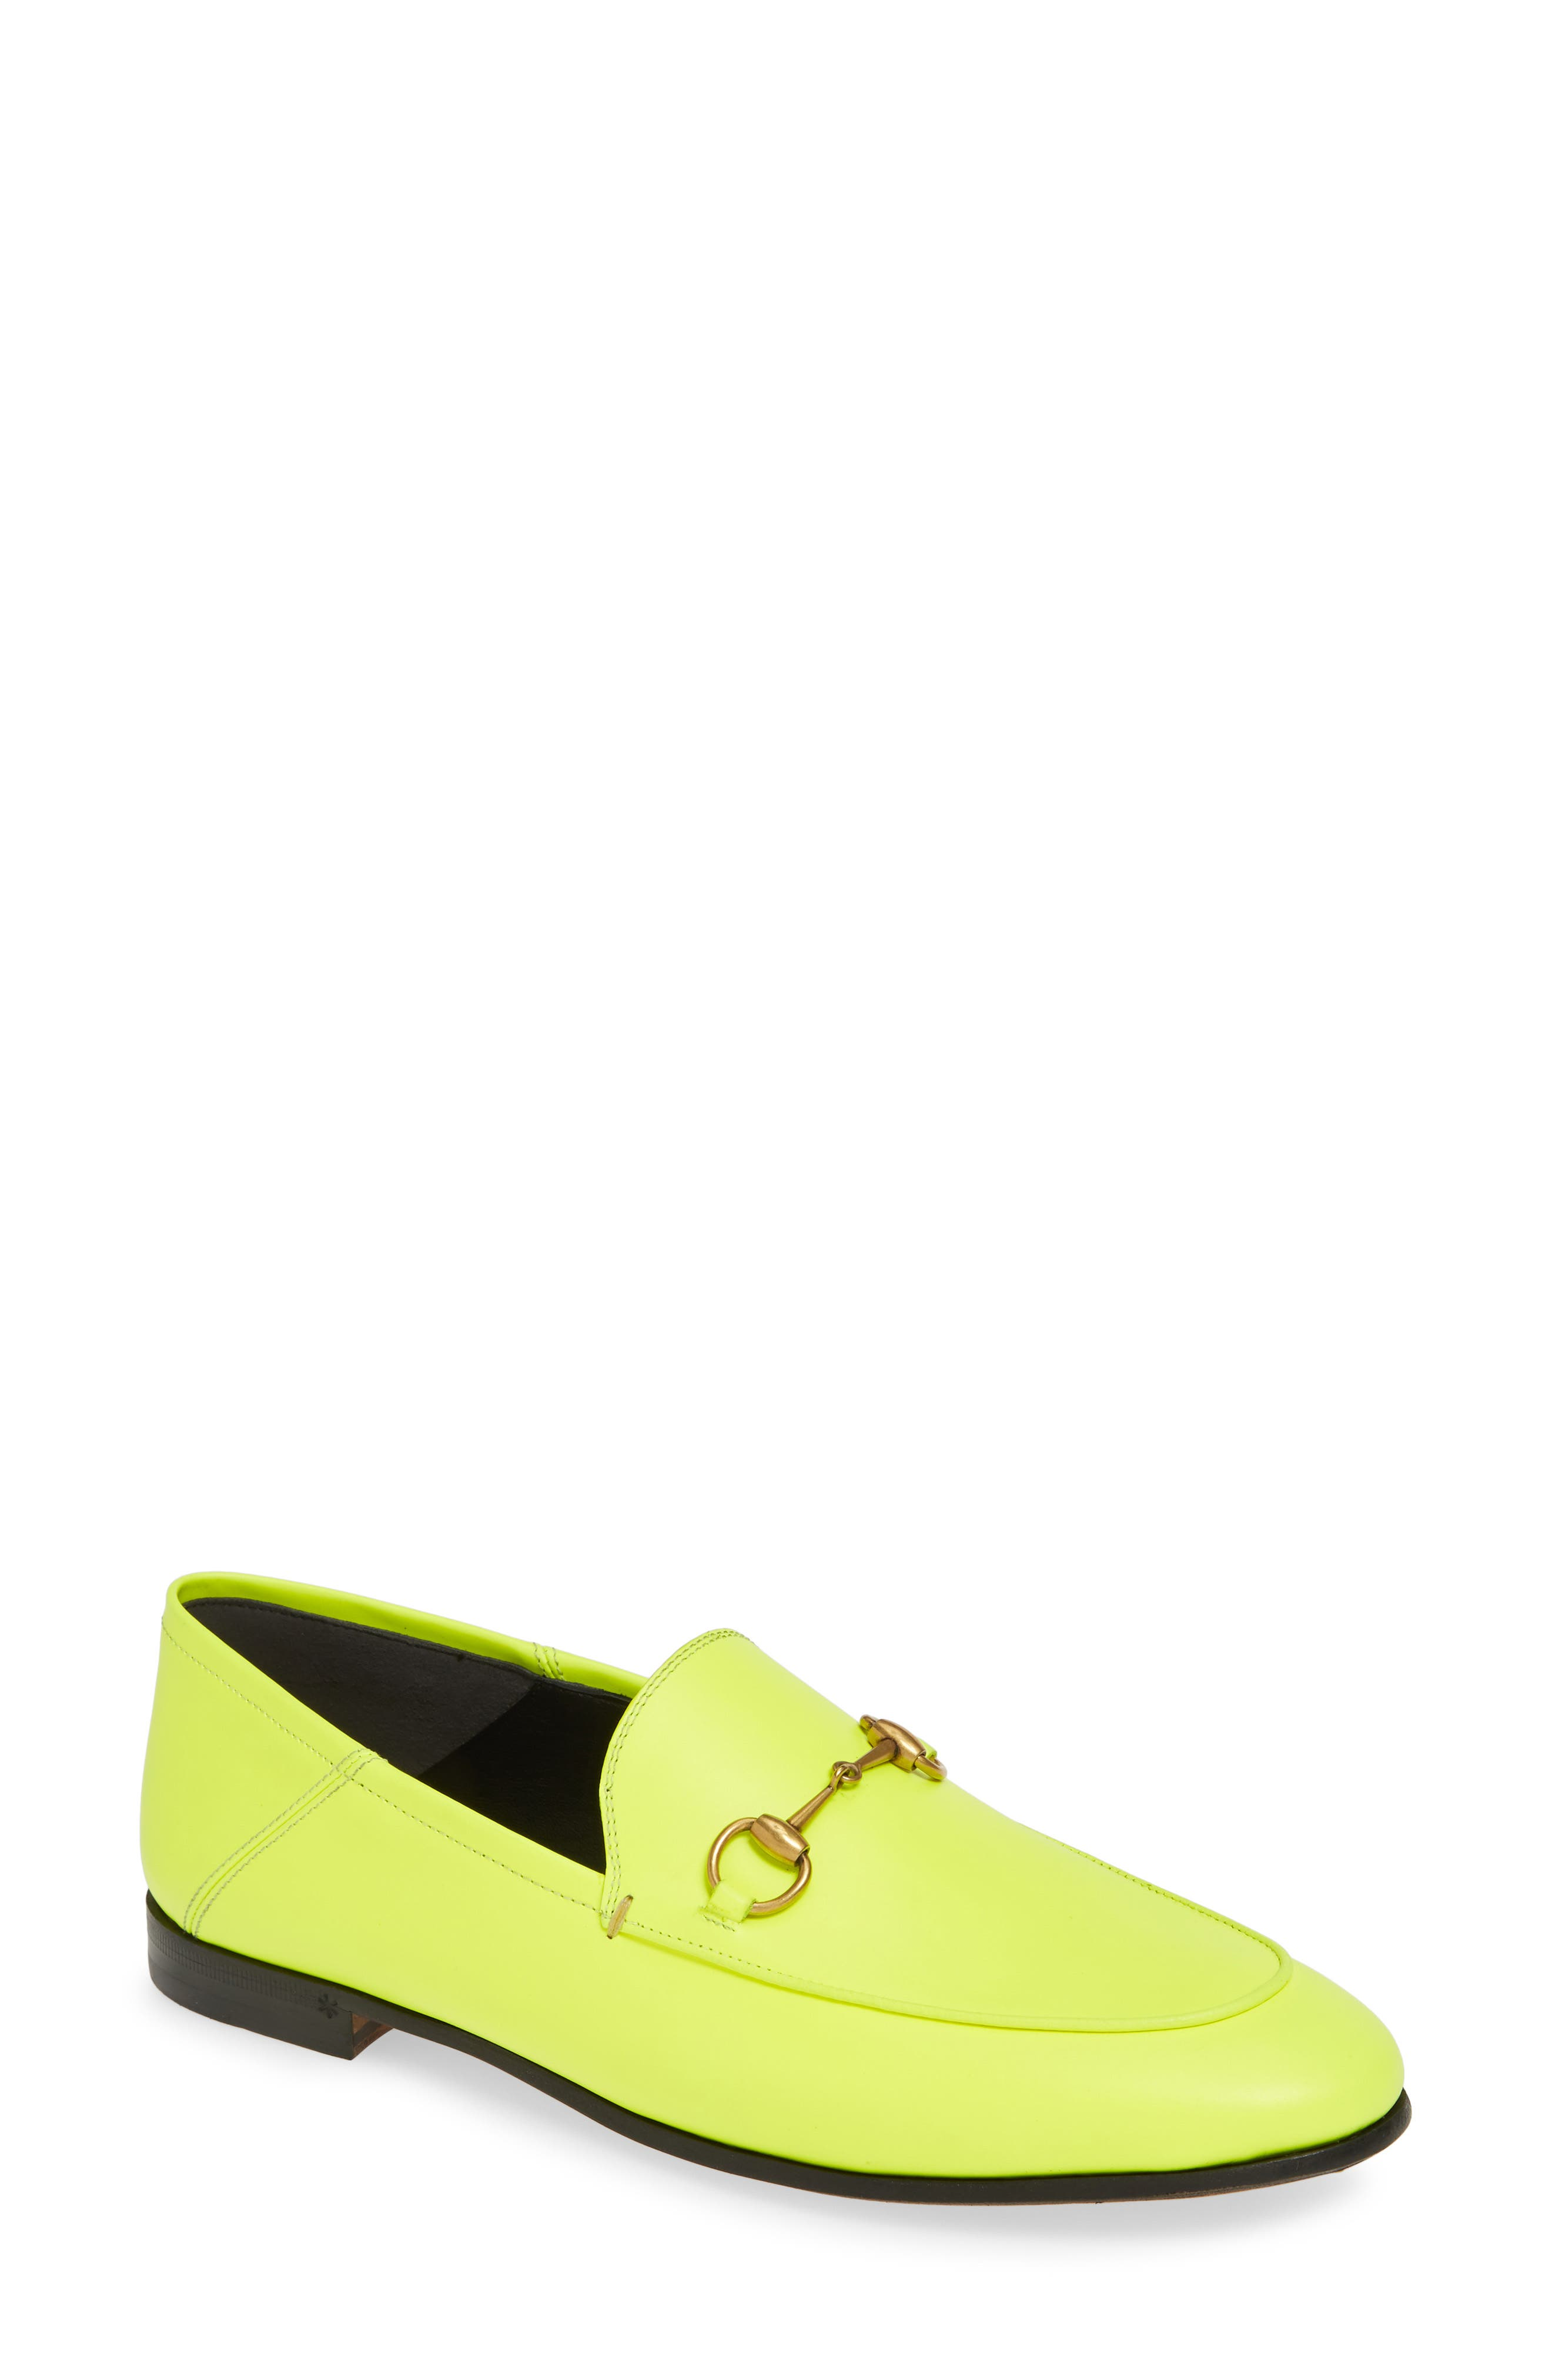 GUCCI Brixton Convertible Loafer, Main, color, YELLOW FLUO LEATHER